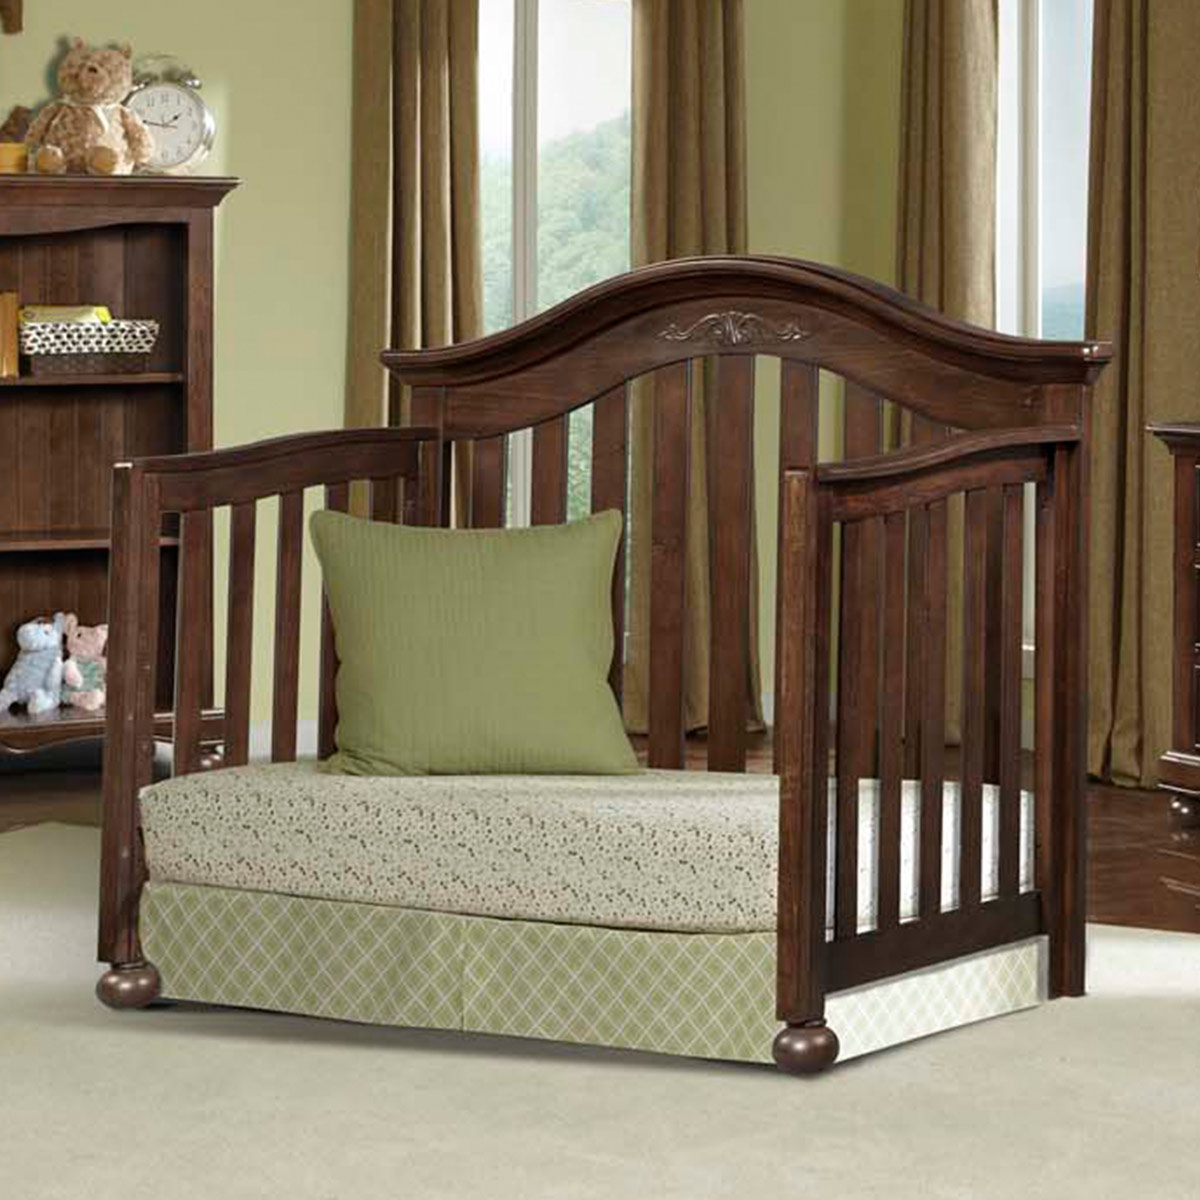 Westwood Design Meadowdale 2 Piece Nursery Set   4 In 1 Convertible Crib  And Double Dresser In Madeira FREE SHIPPING